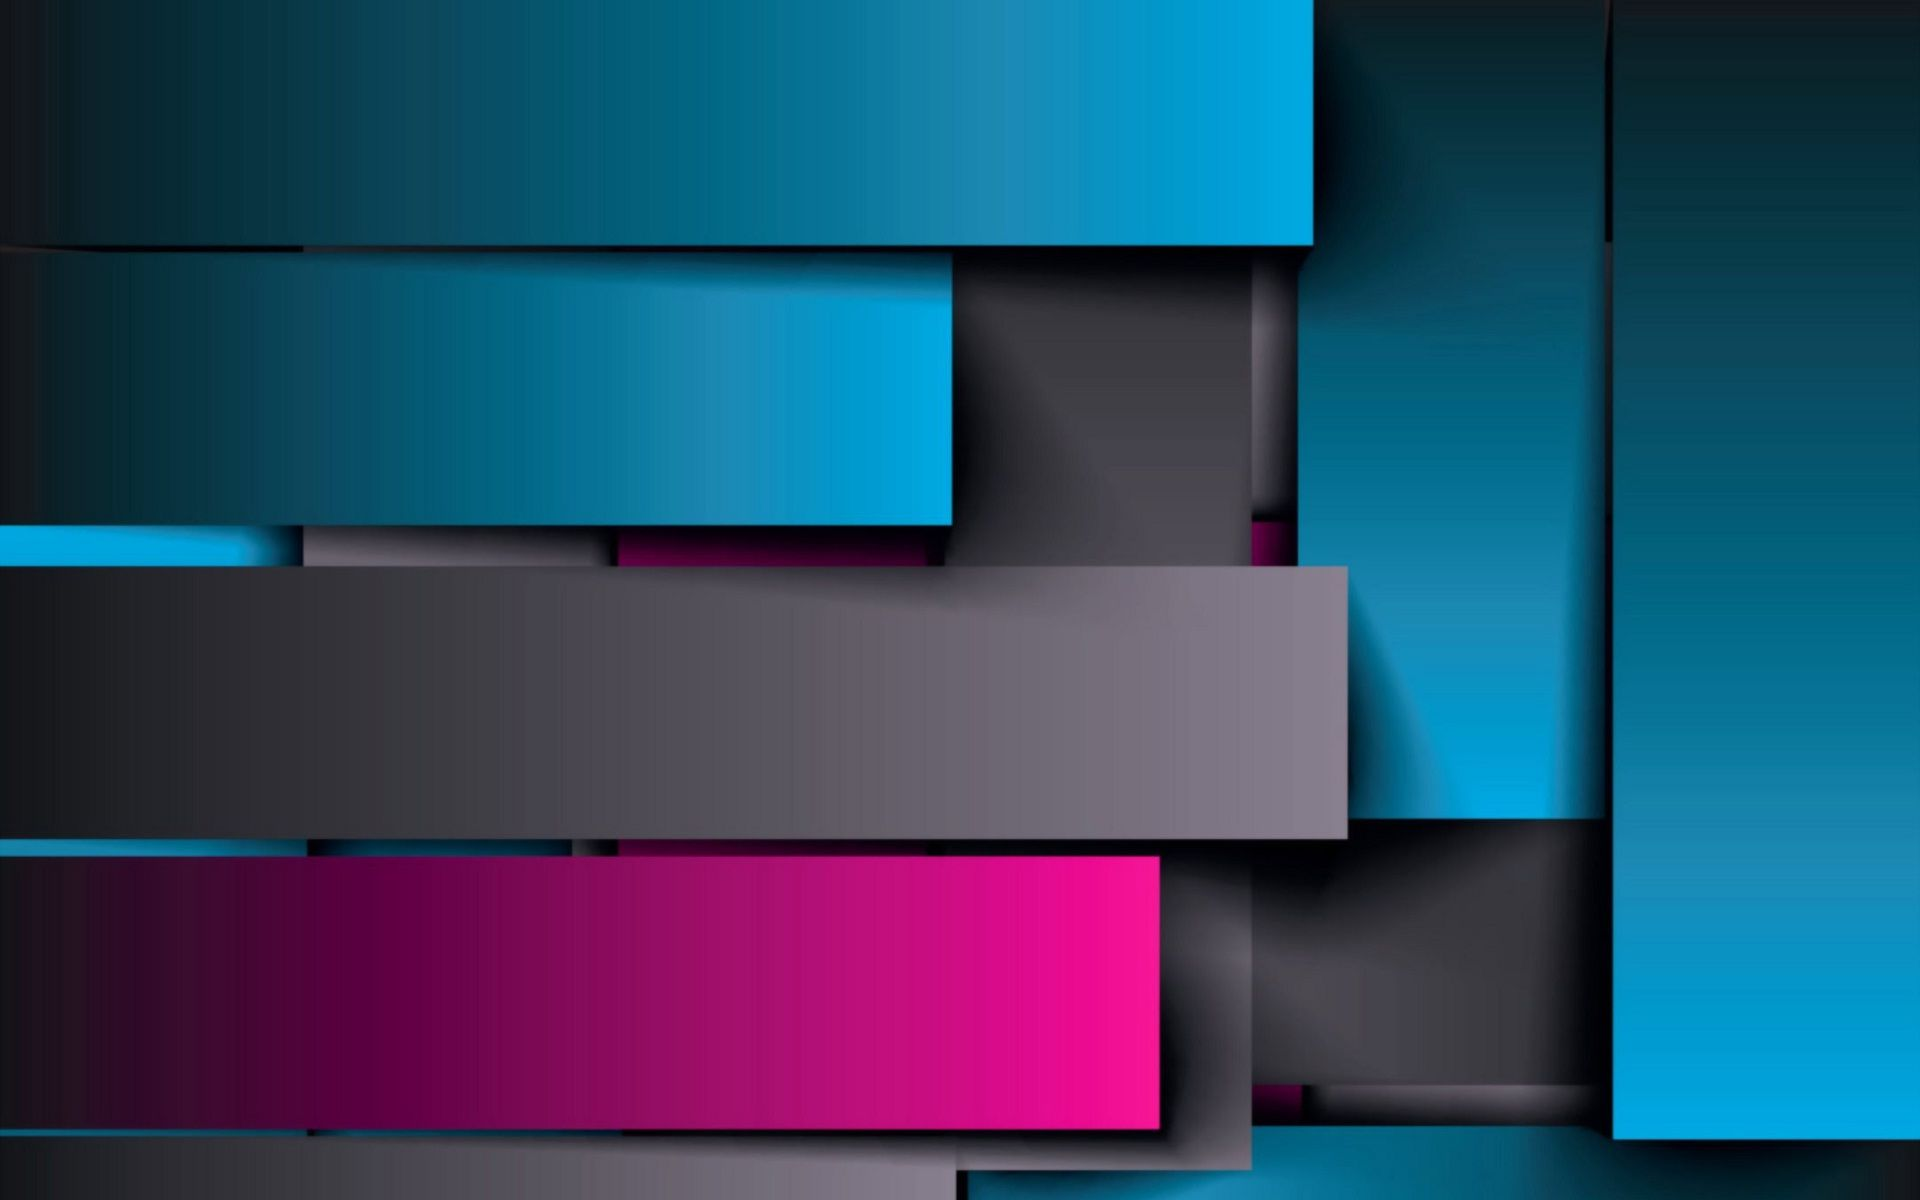 1920x1200 Shodow shine blue and pink abstract wallpaper | HD Wallpapers Rocks